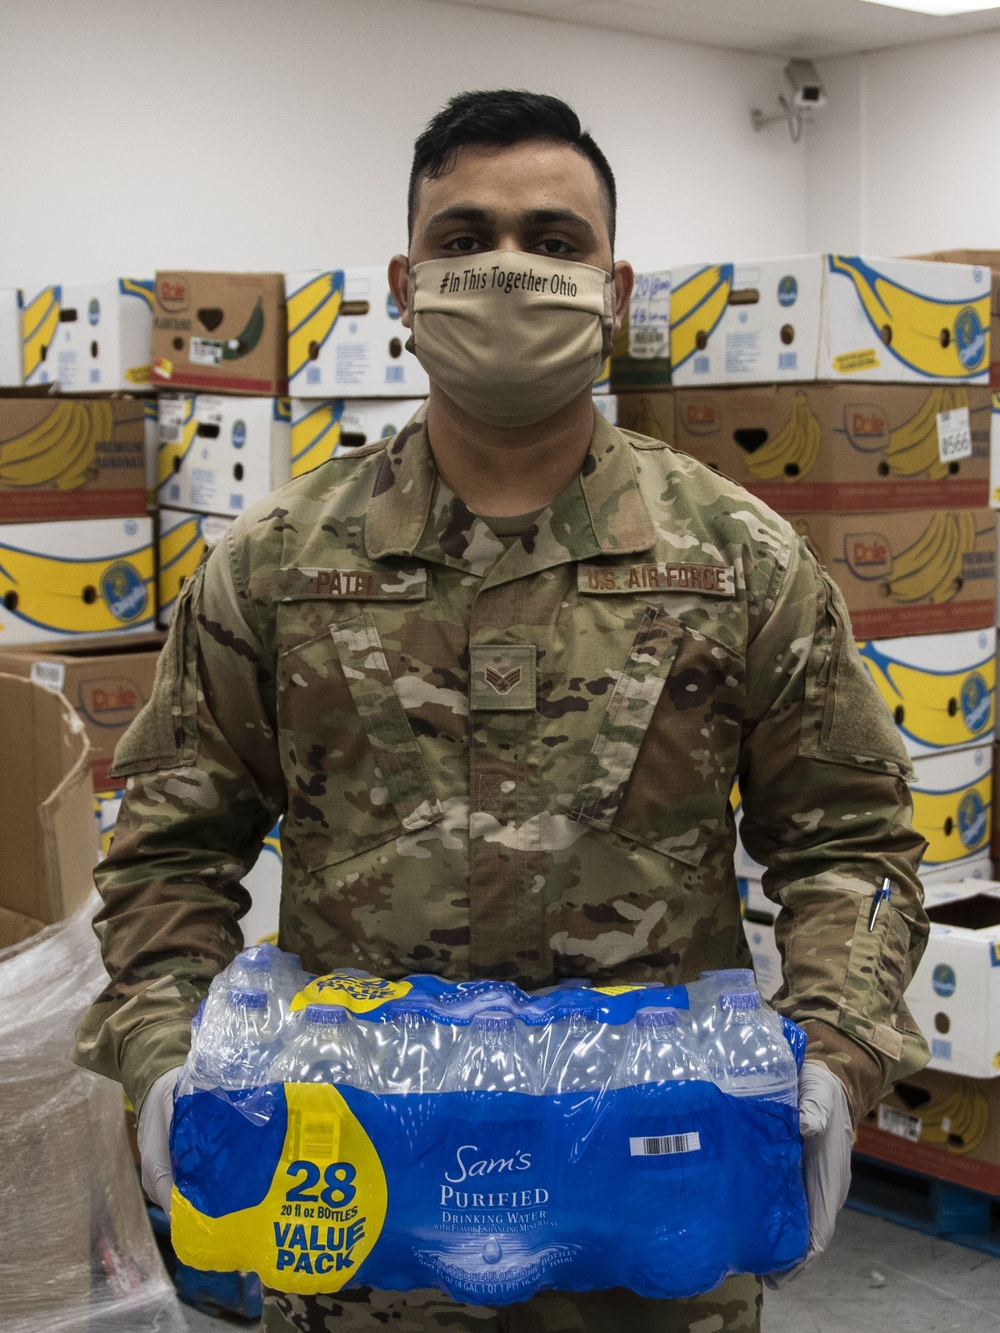 Members of the 121ARW support Ohio food bank